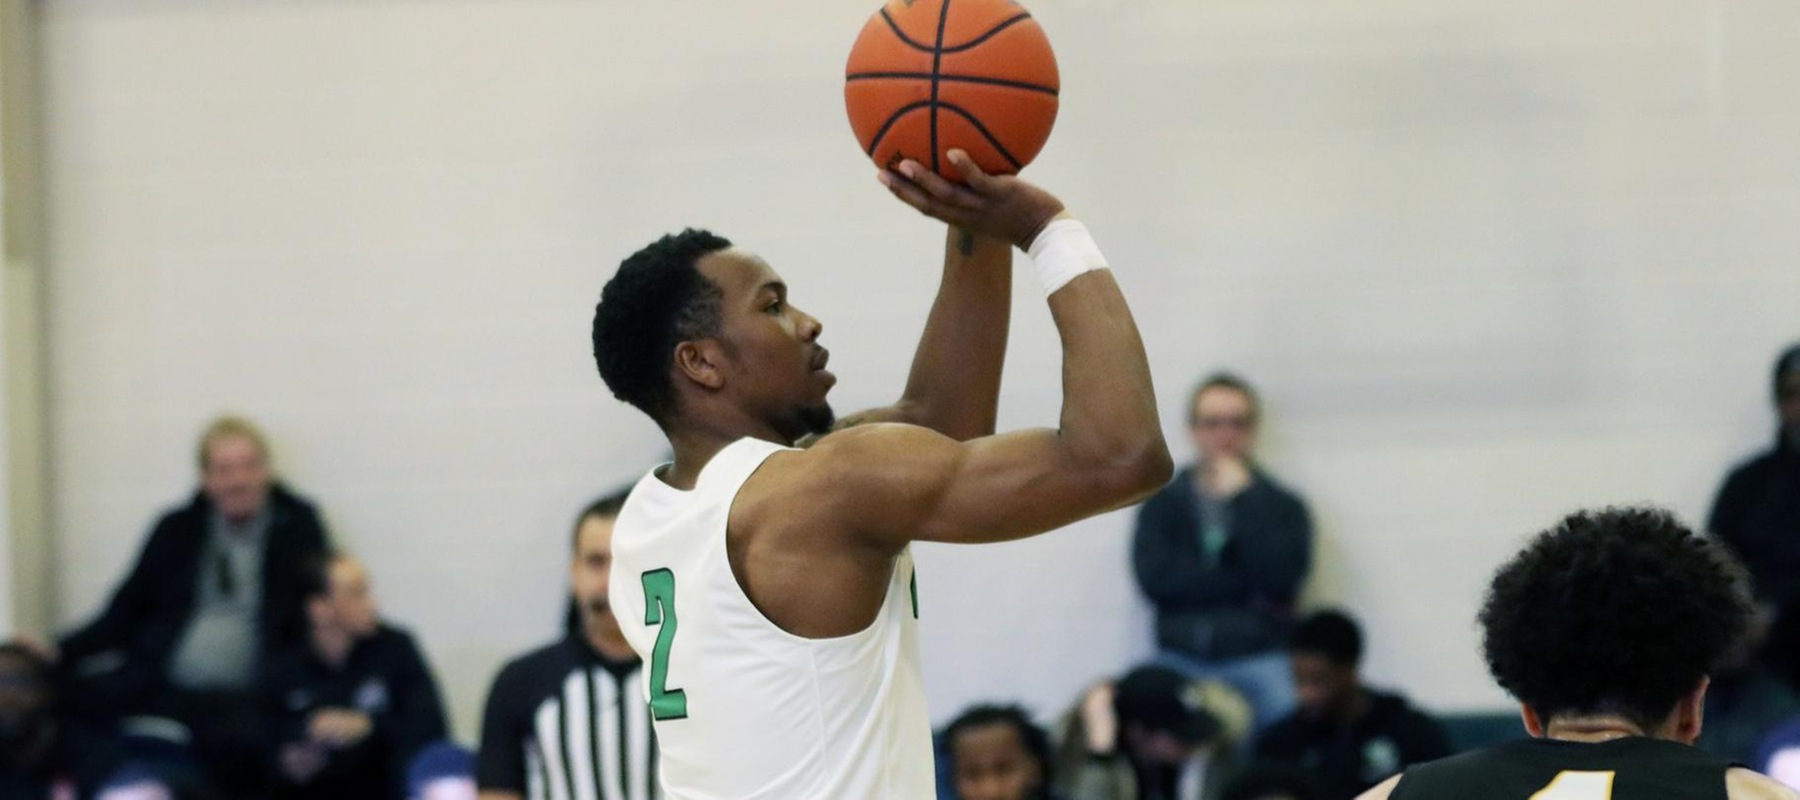 Copyright 2020; Wilmington University. All rights reserved. Photo by Laura Gil. February 15, 2020 vs. Concordia.